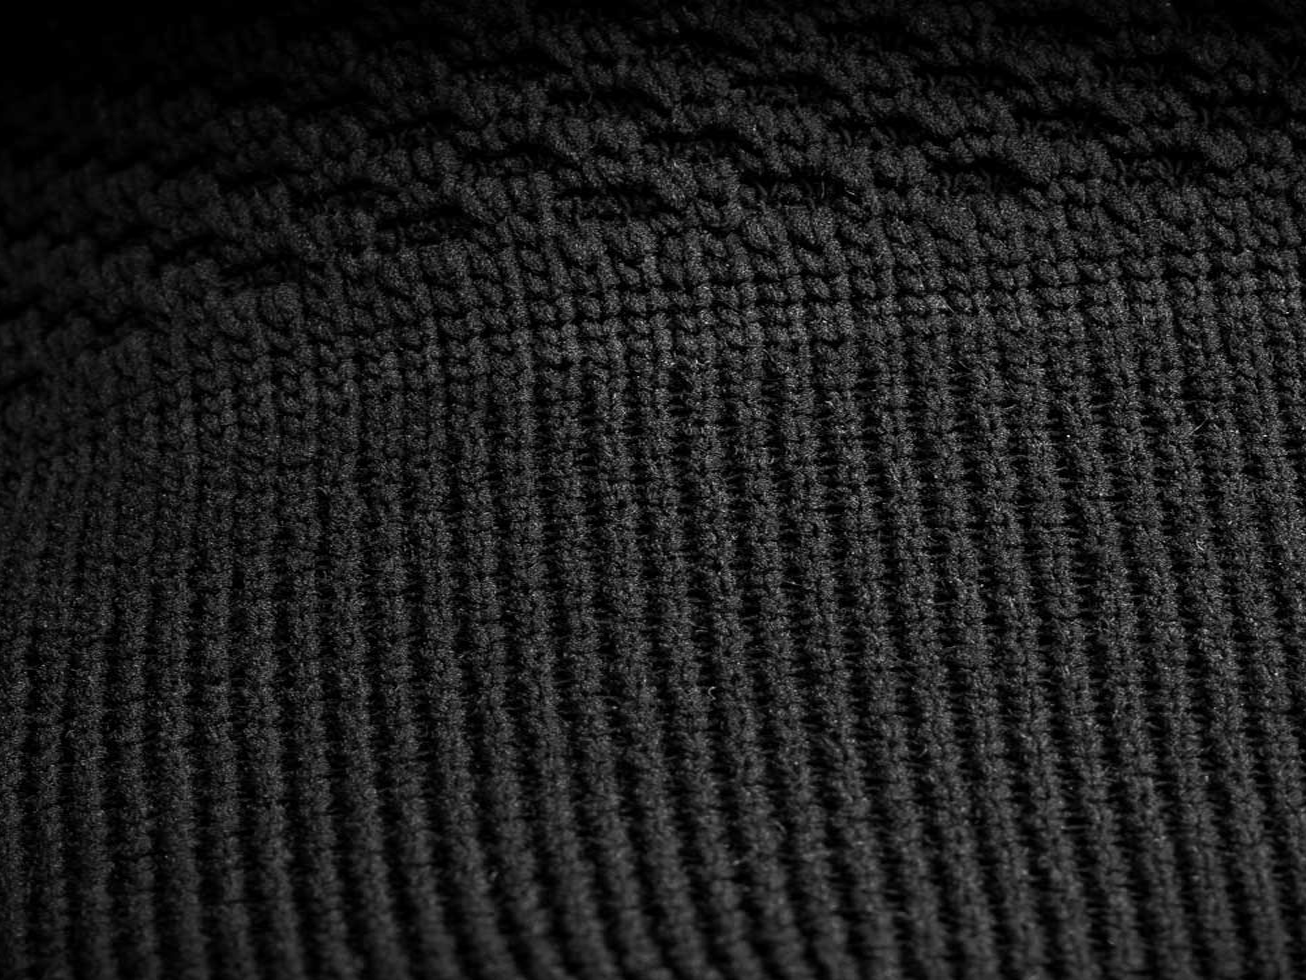 COMFORT: - Active knit® is lightweight, breathable and moisture-wicking for maximum comfort